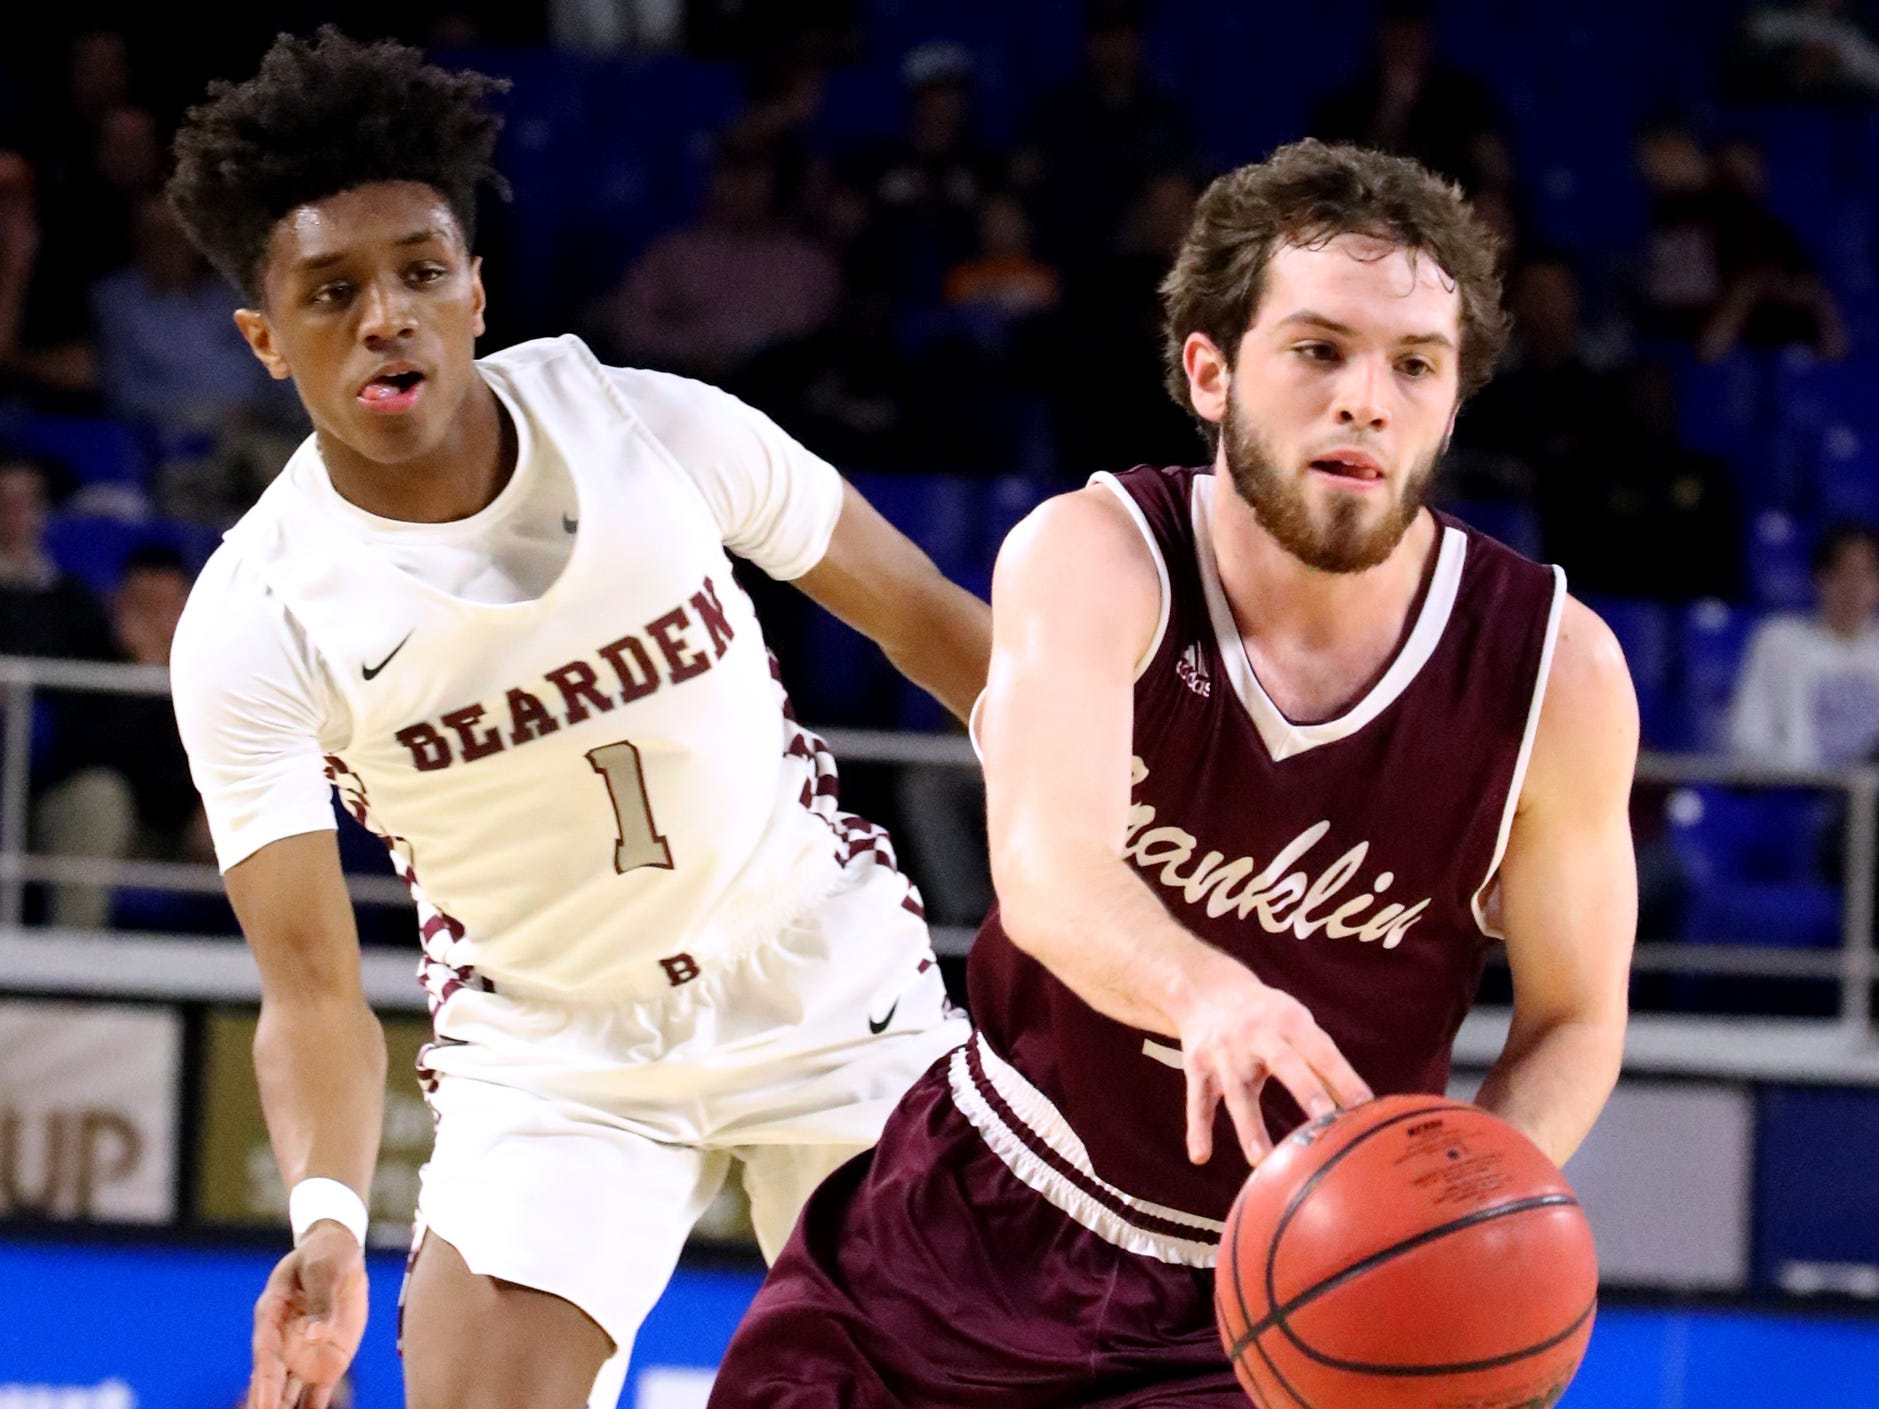 Franklin's Reese Glover (3) moves around Bearden's Trent Stephney (1) during the quarterfinal round of the TSSAA Class AAA Boys State Tournament, on Wednesday, March 13, 2019, at Murphy Center in Murfreesboro, Tenn.